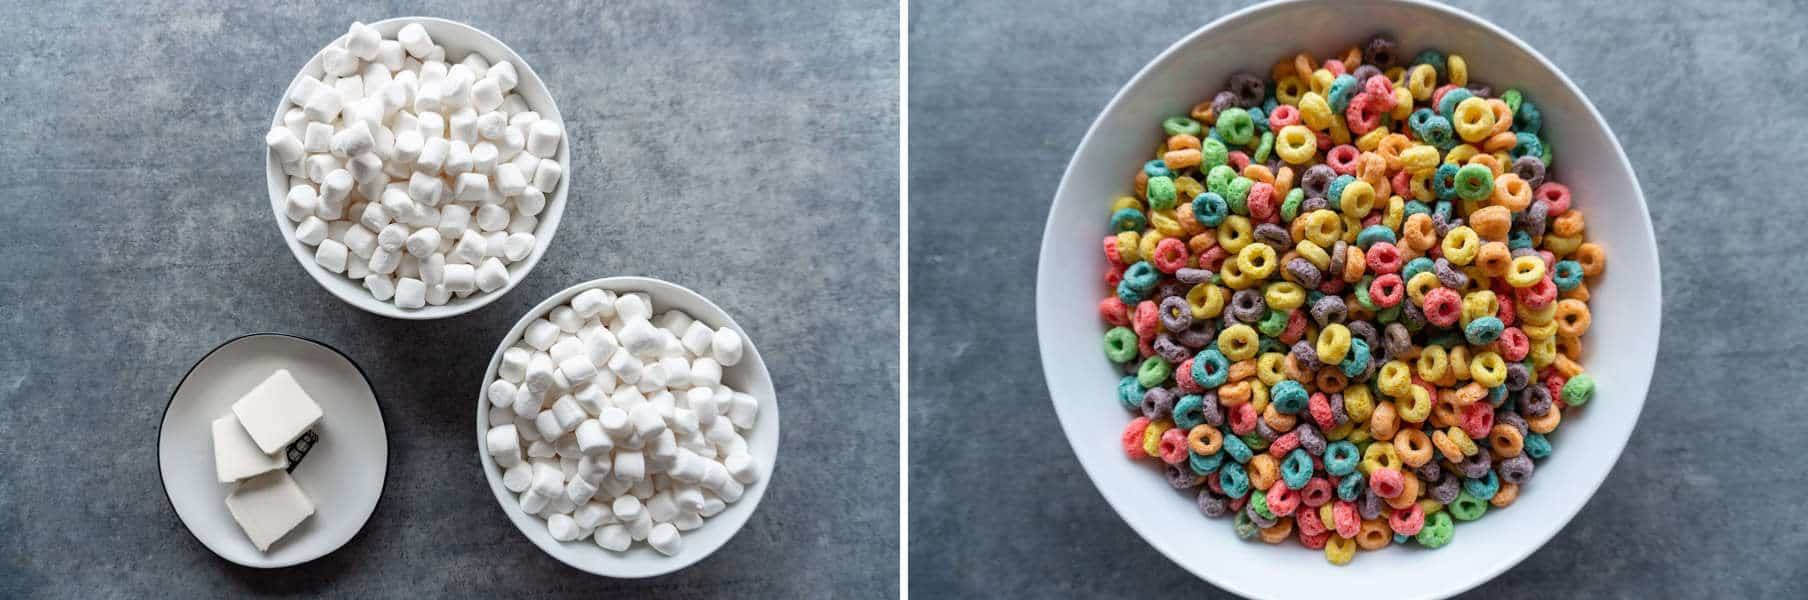 Fruit Loop Marshmallow Bar ingredients